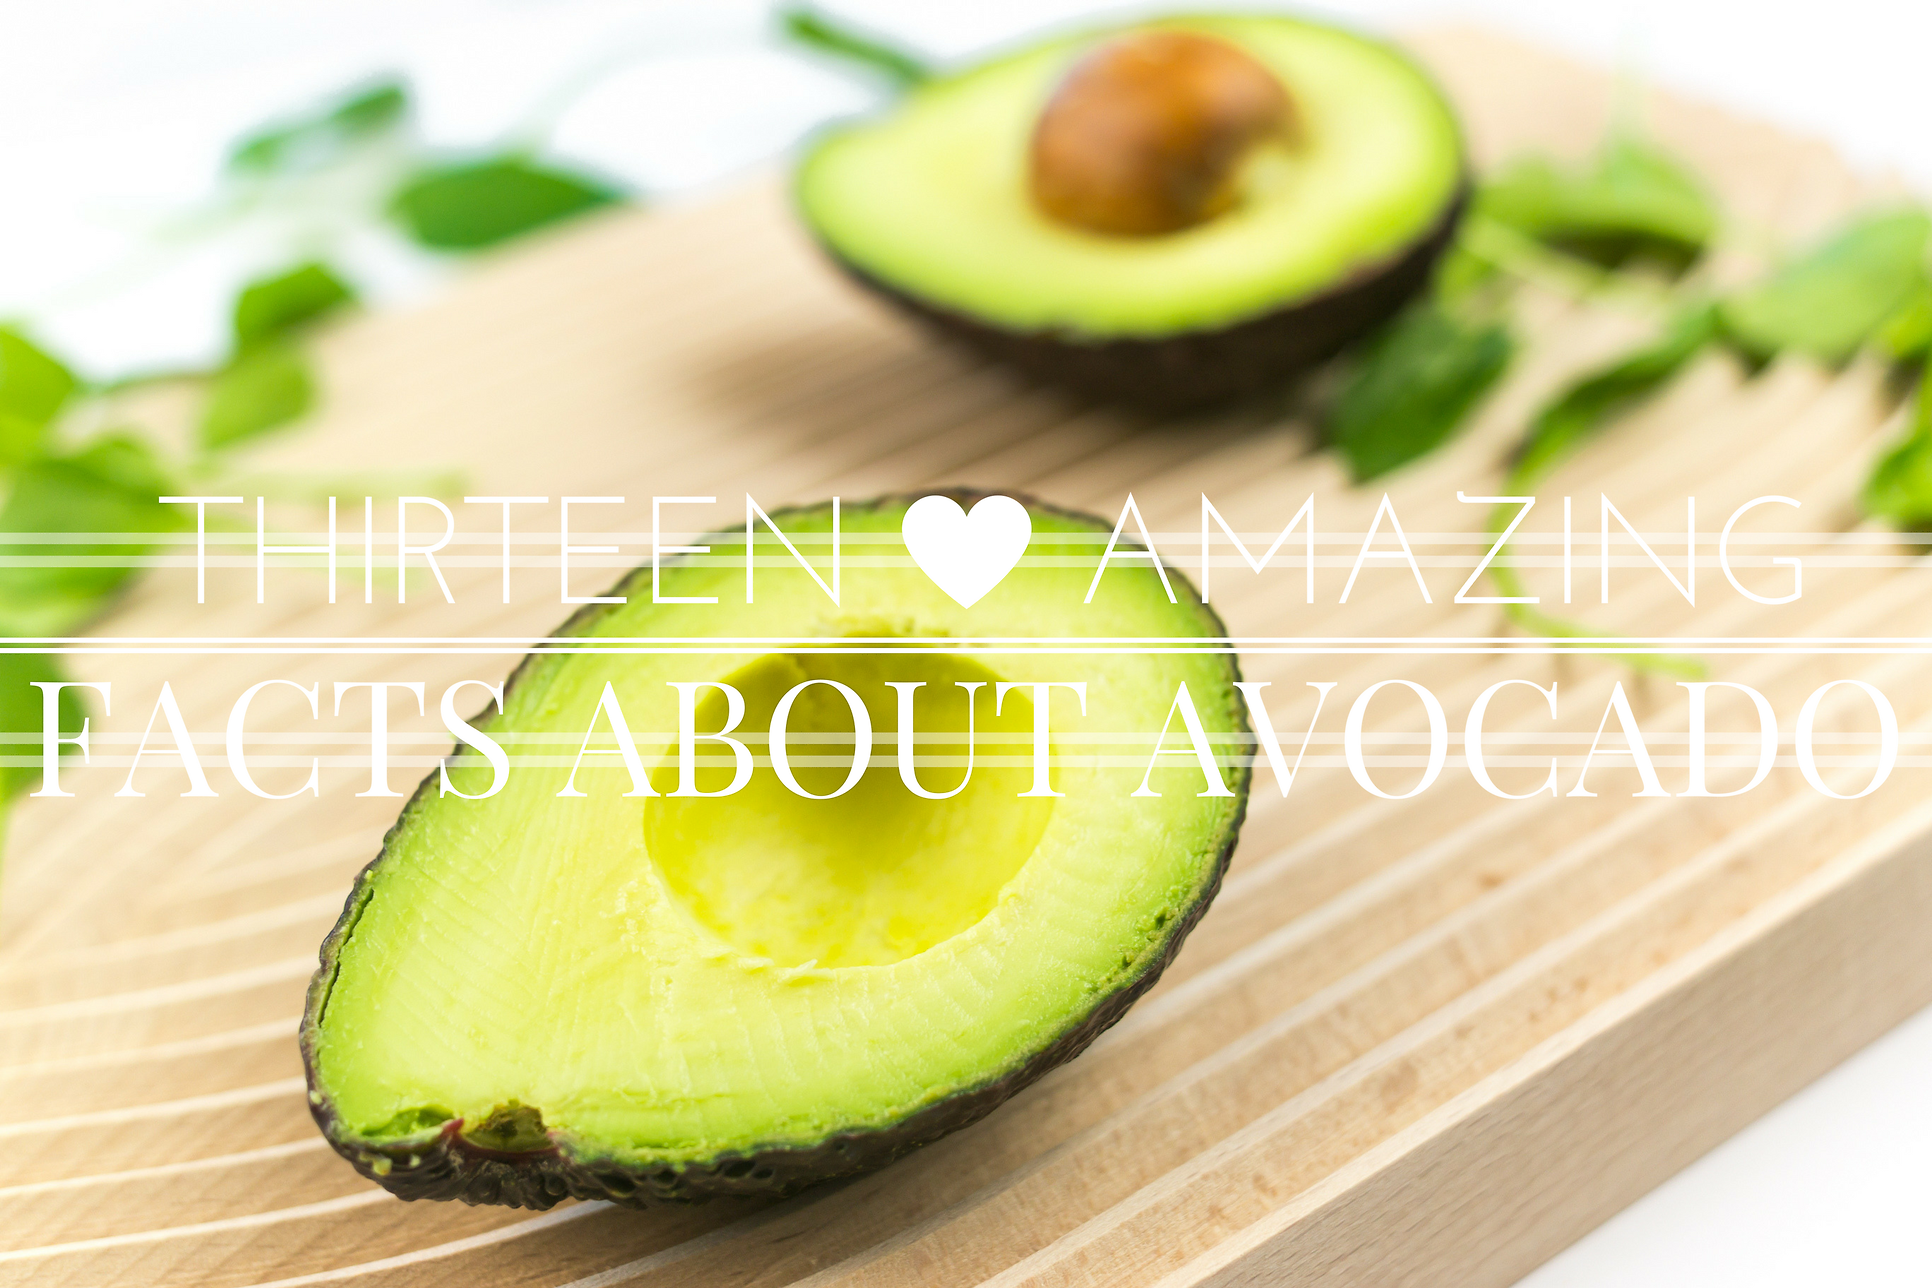 13 amazing facts about avocado